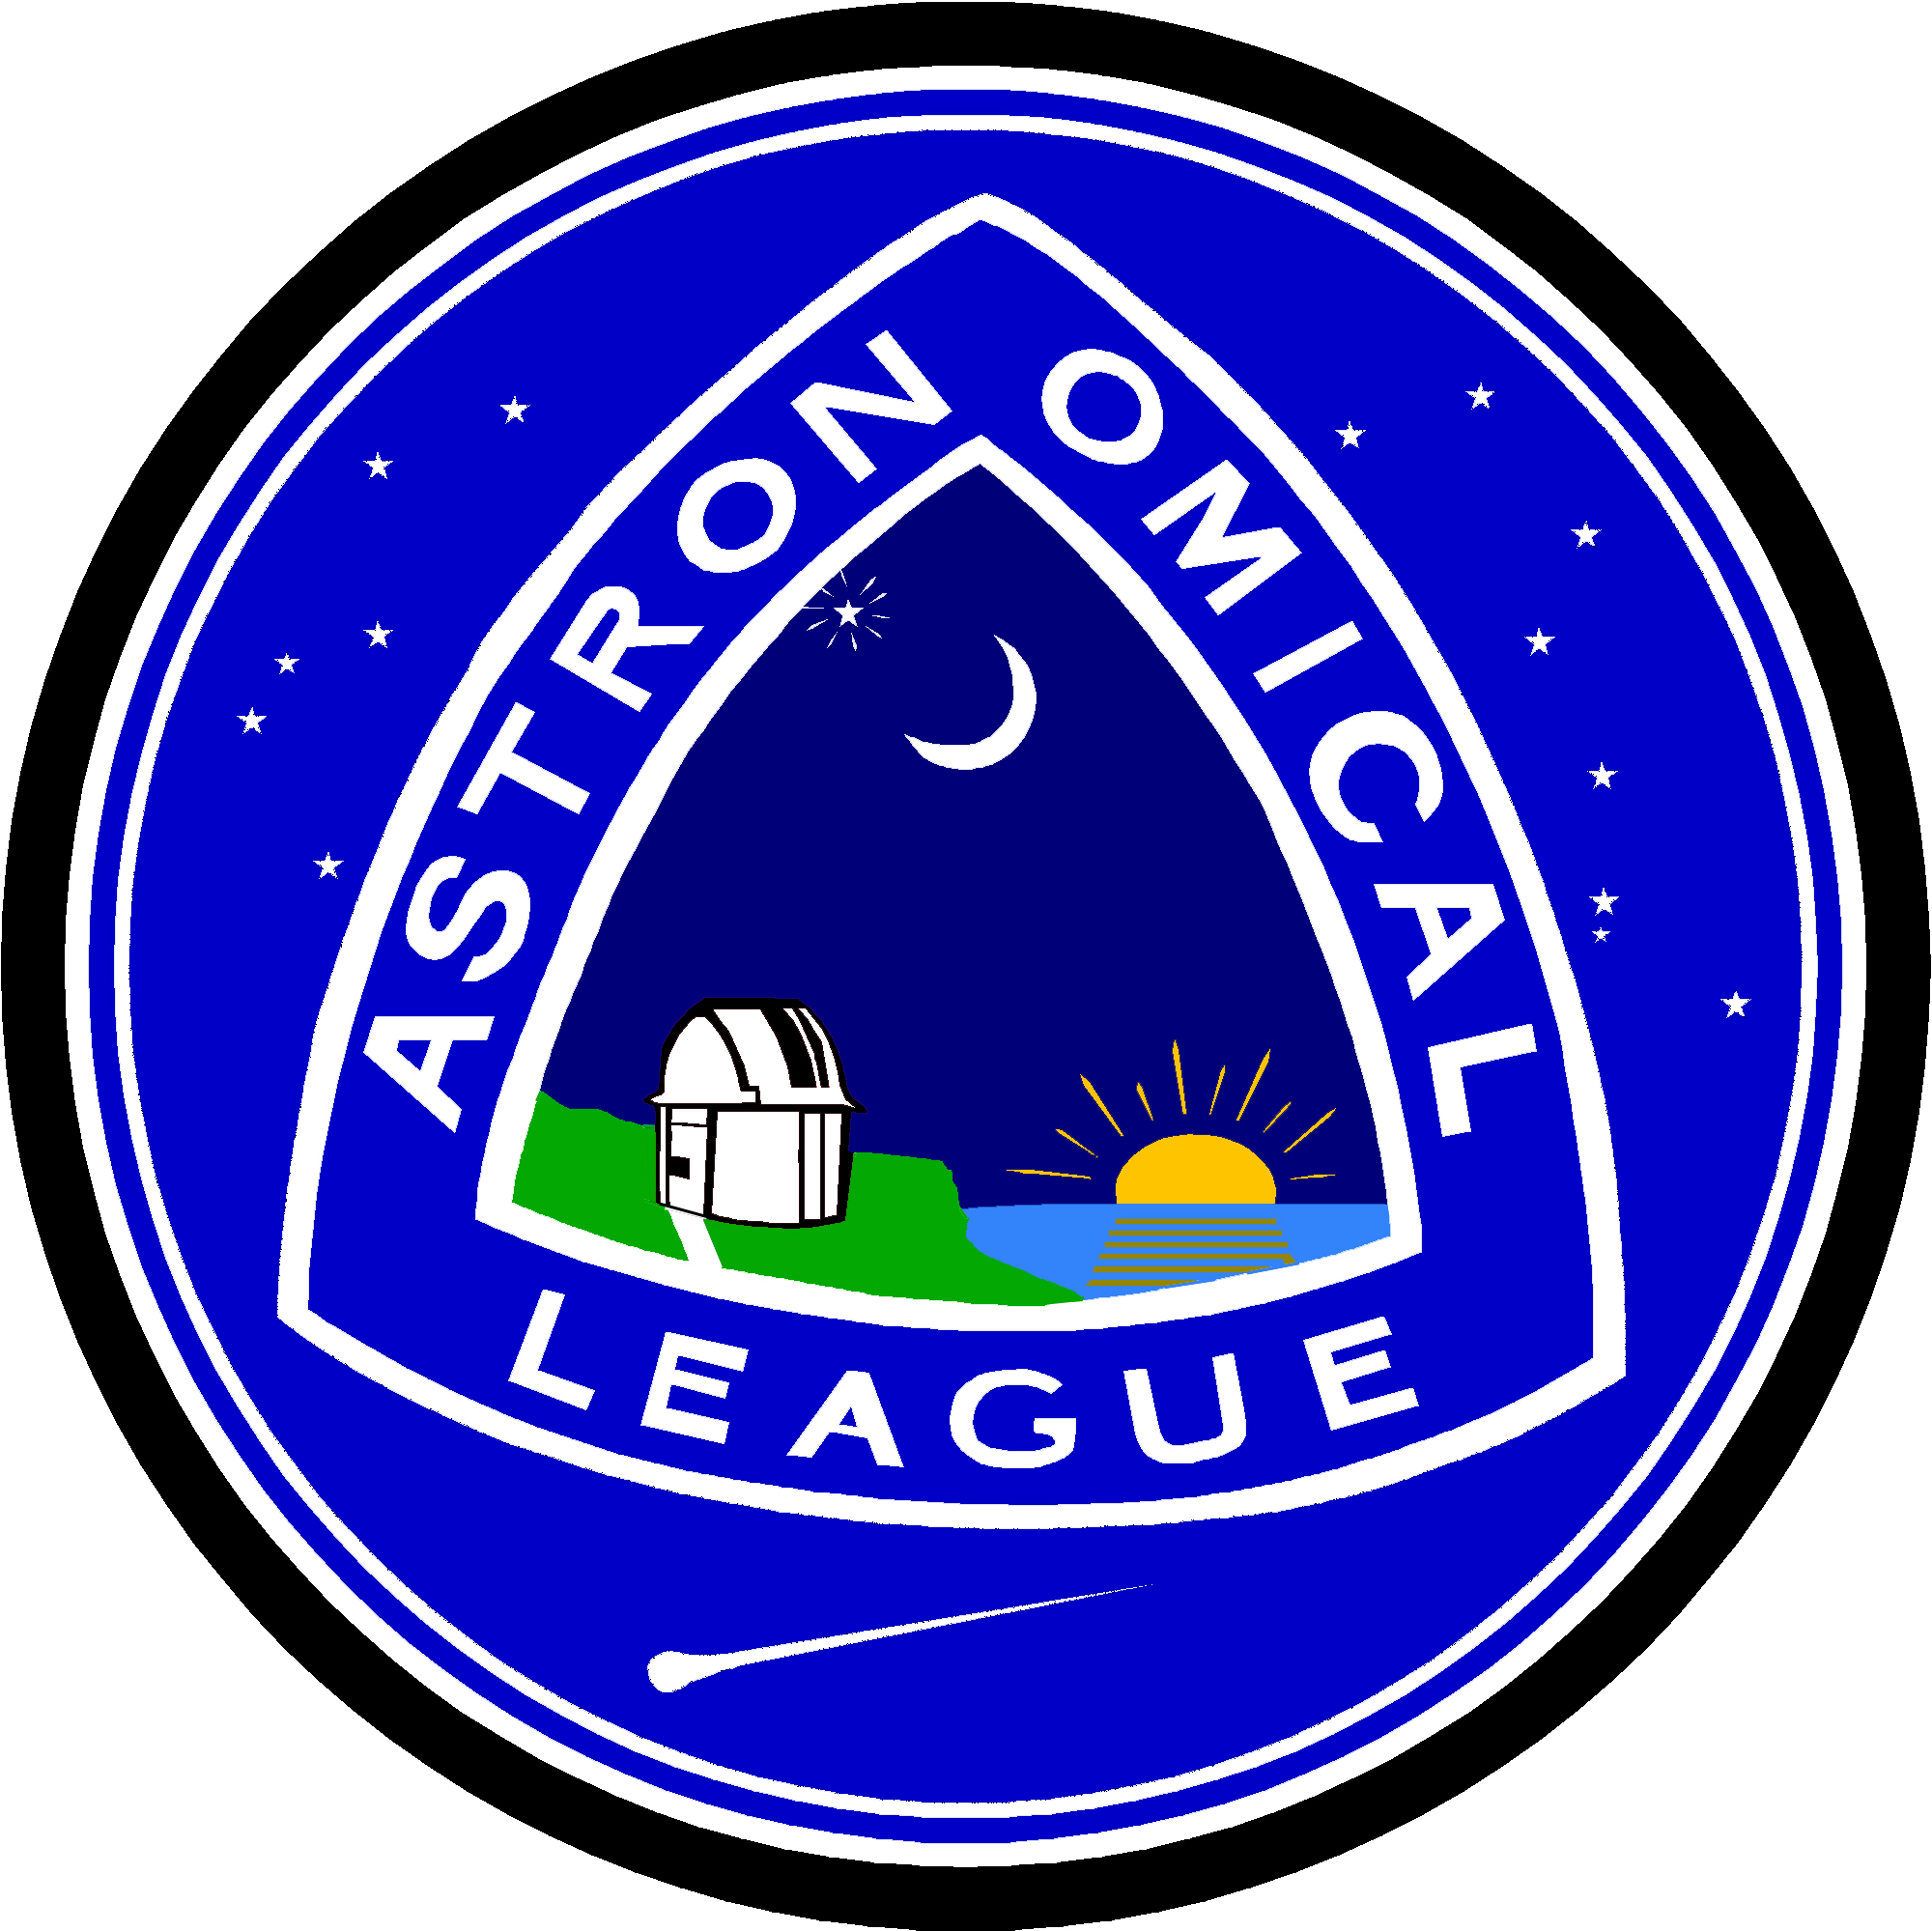 Donate to the Astronomical League